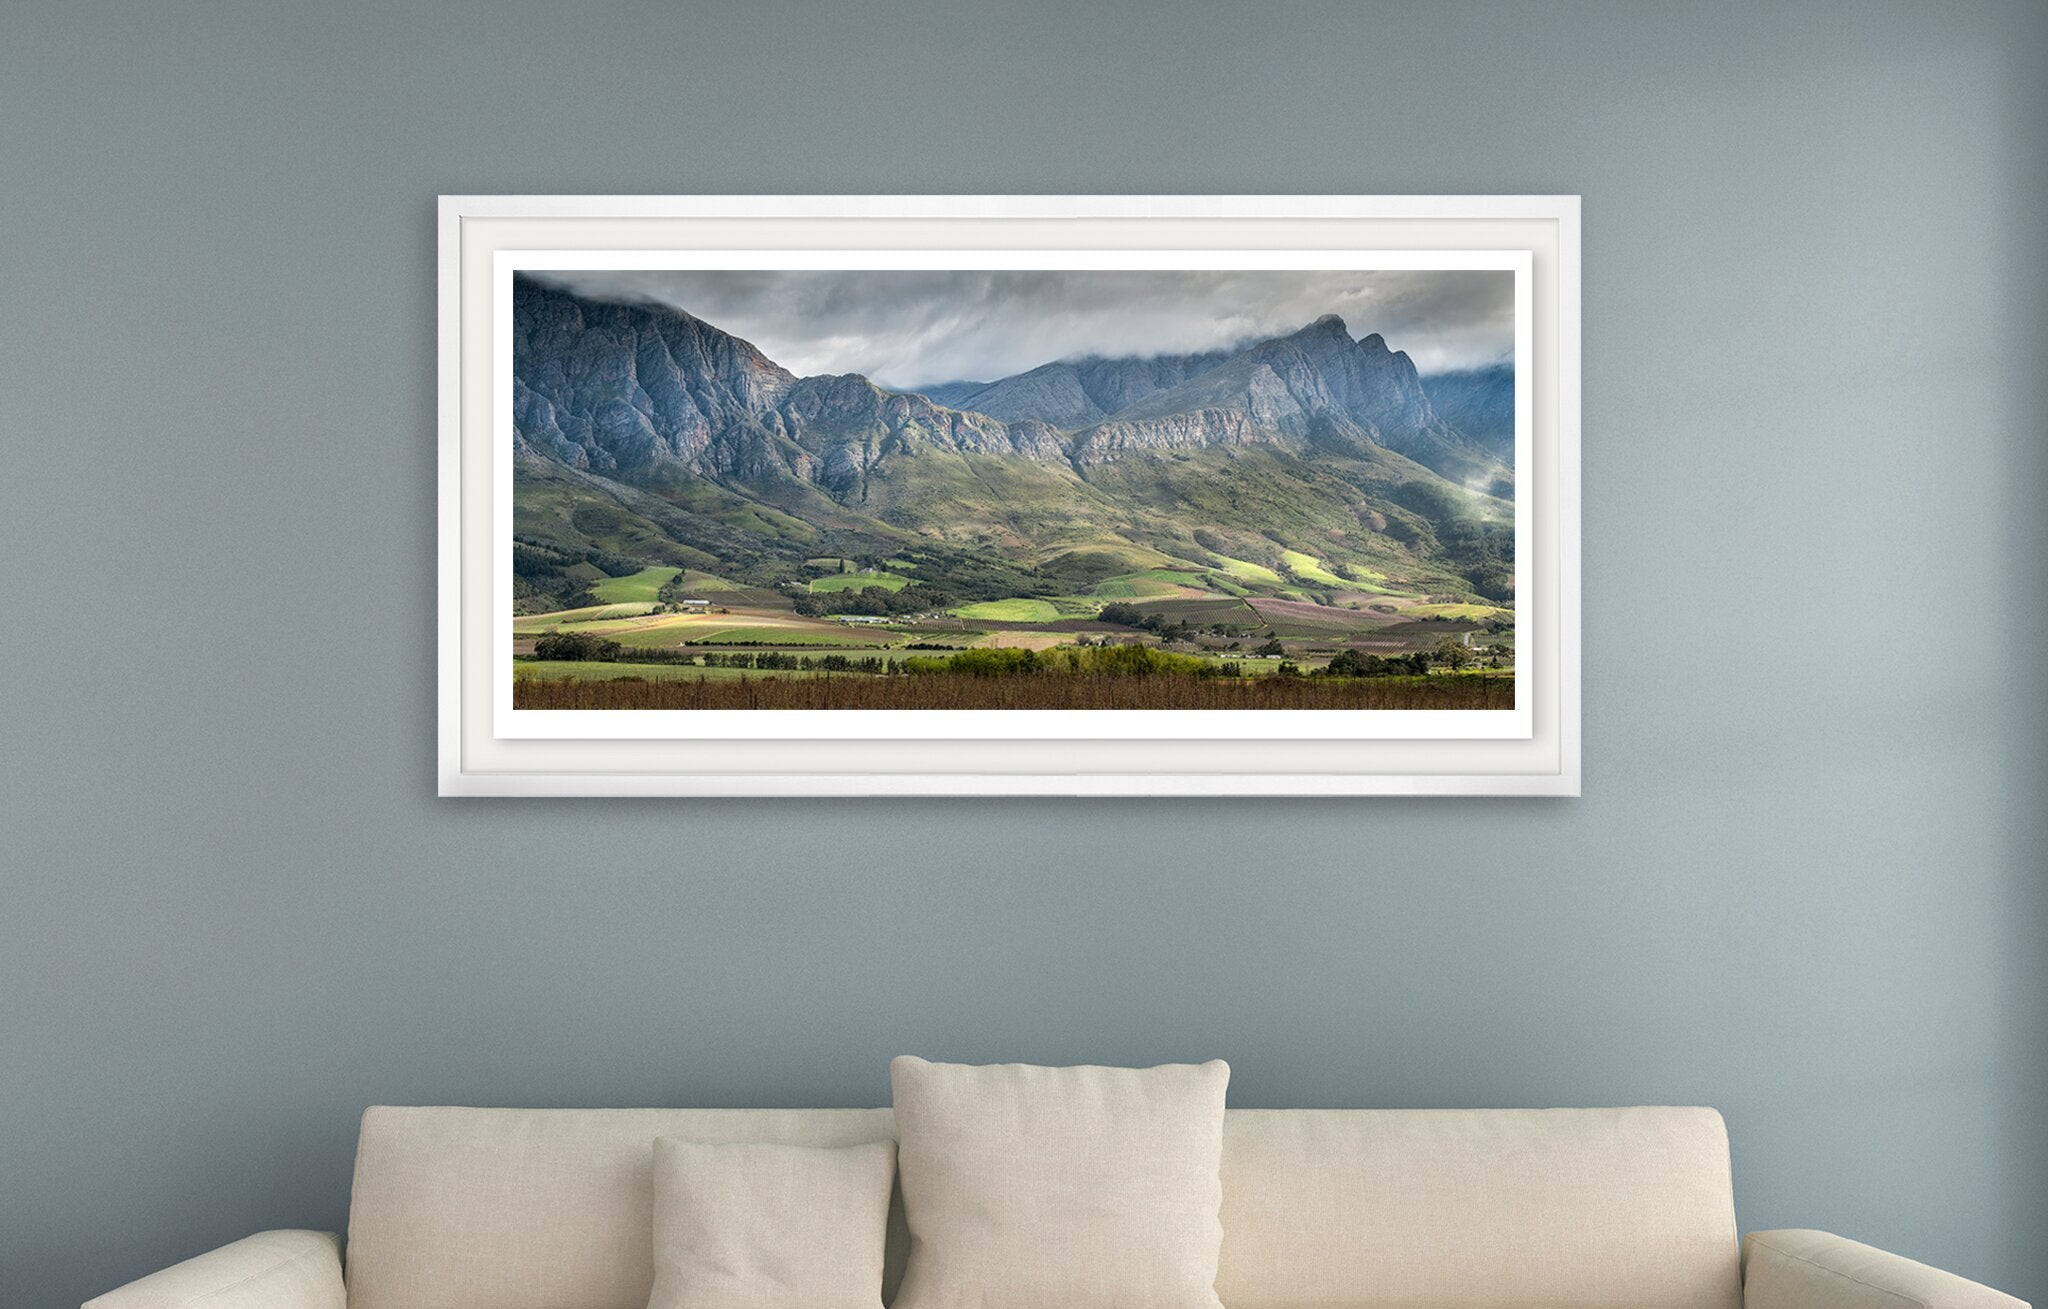 Photograph taken by Peter Corbett of the Horse Shoe mountain range in Tulbagh